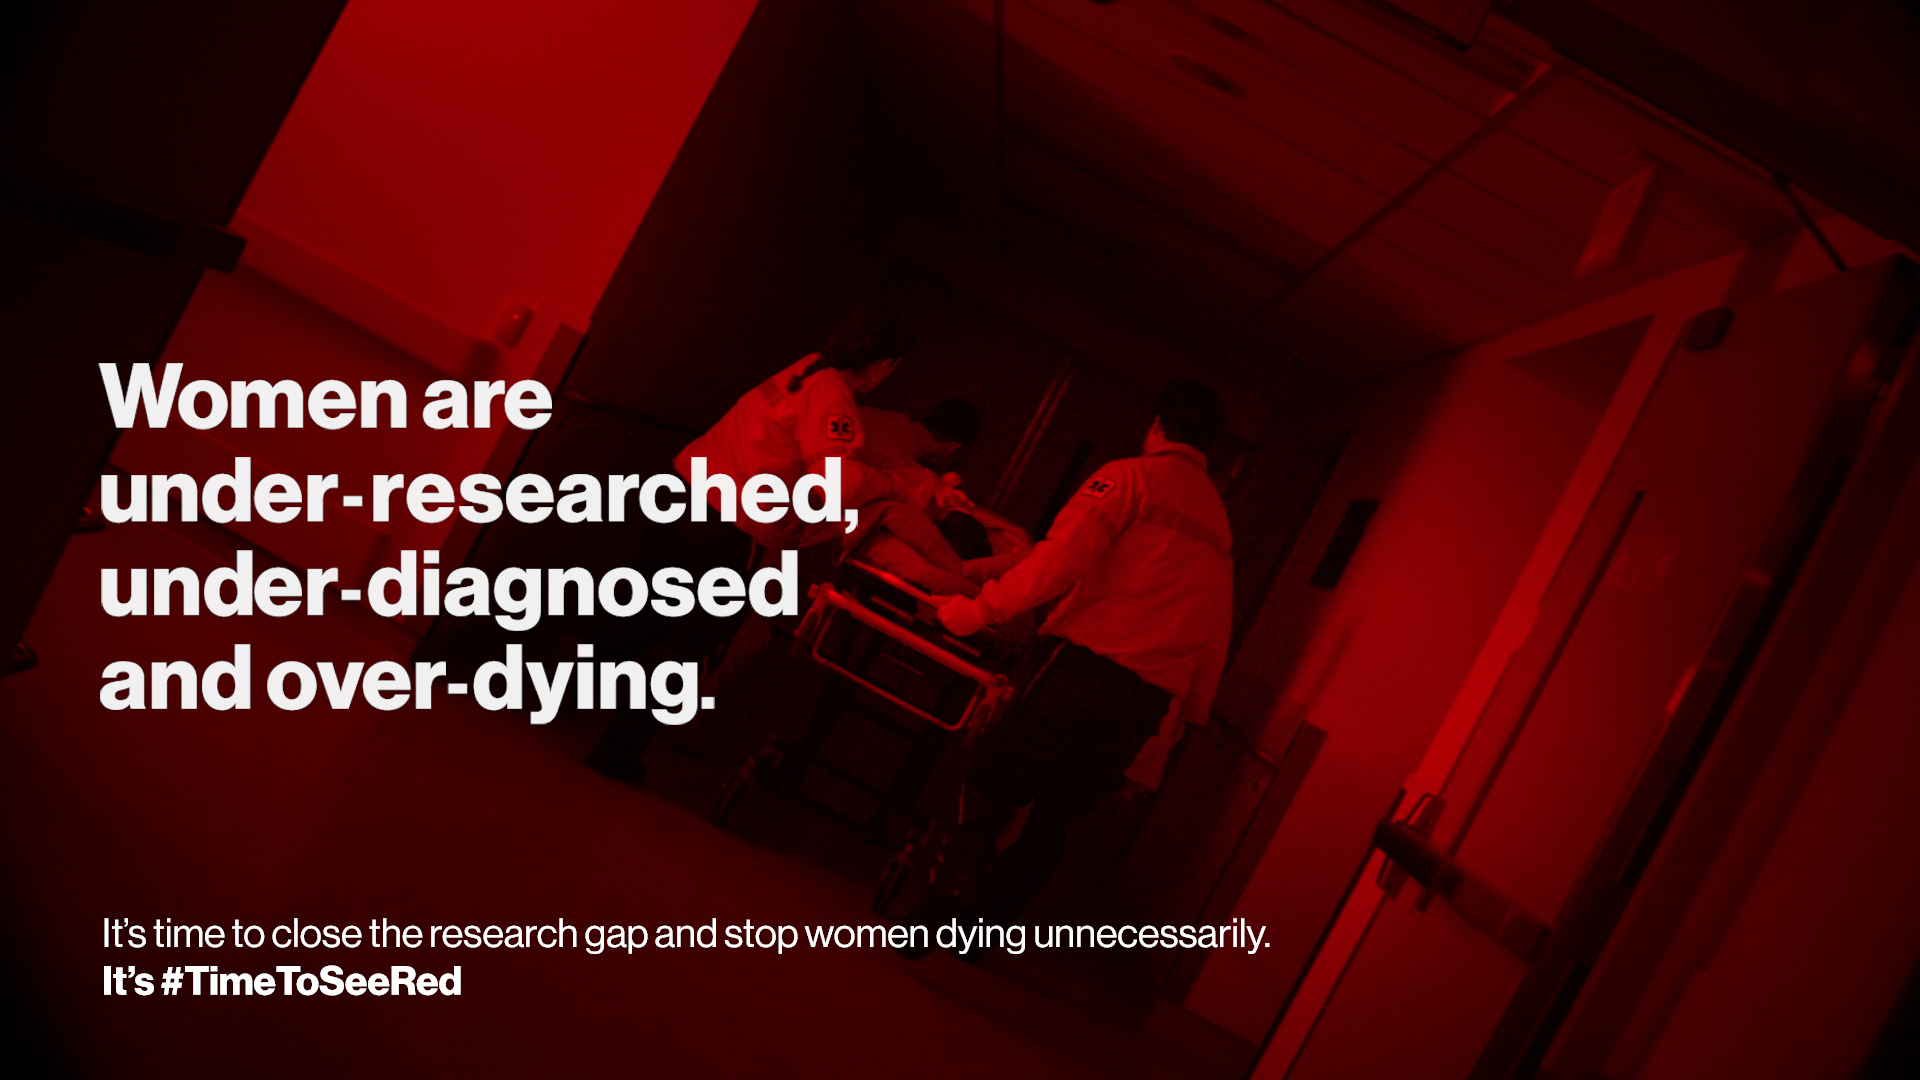 Woman are under-researched, under-diagnosed and over-dying.